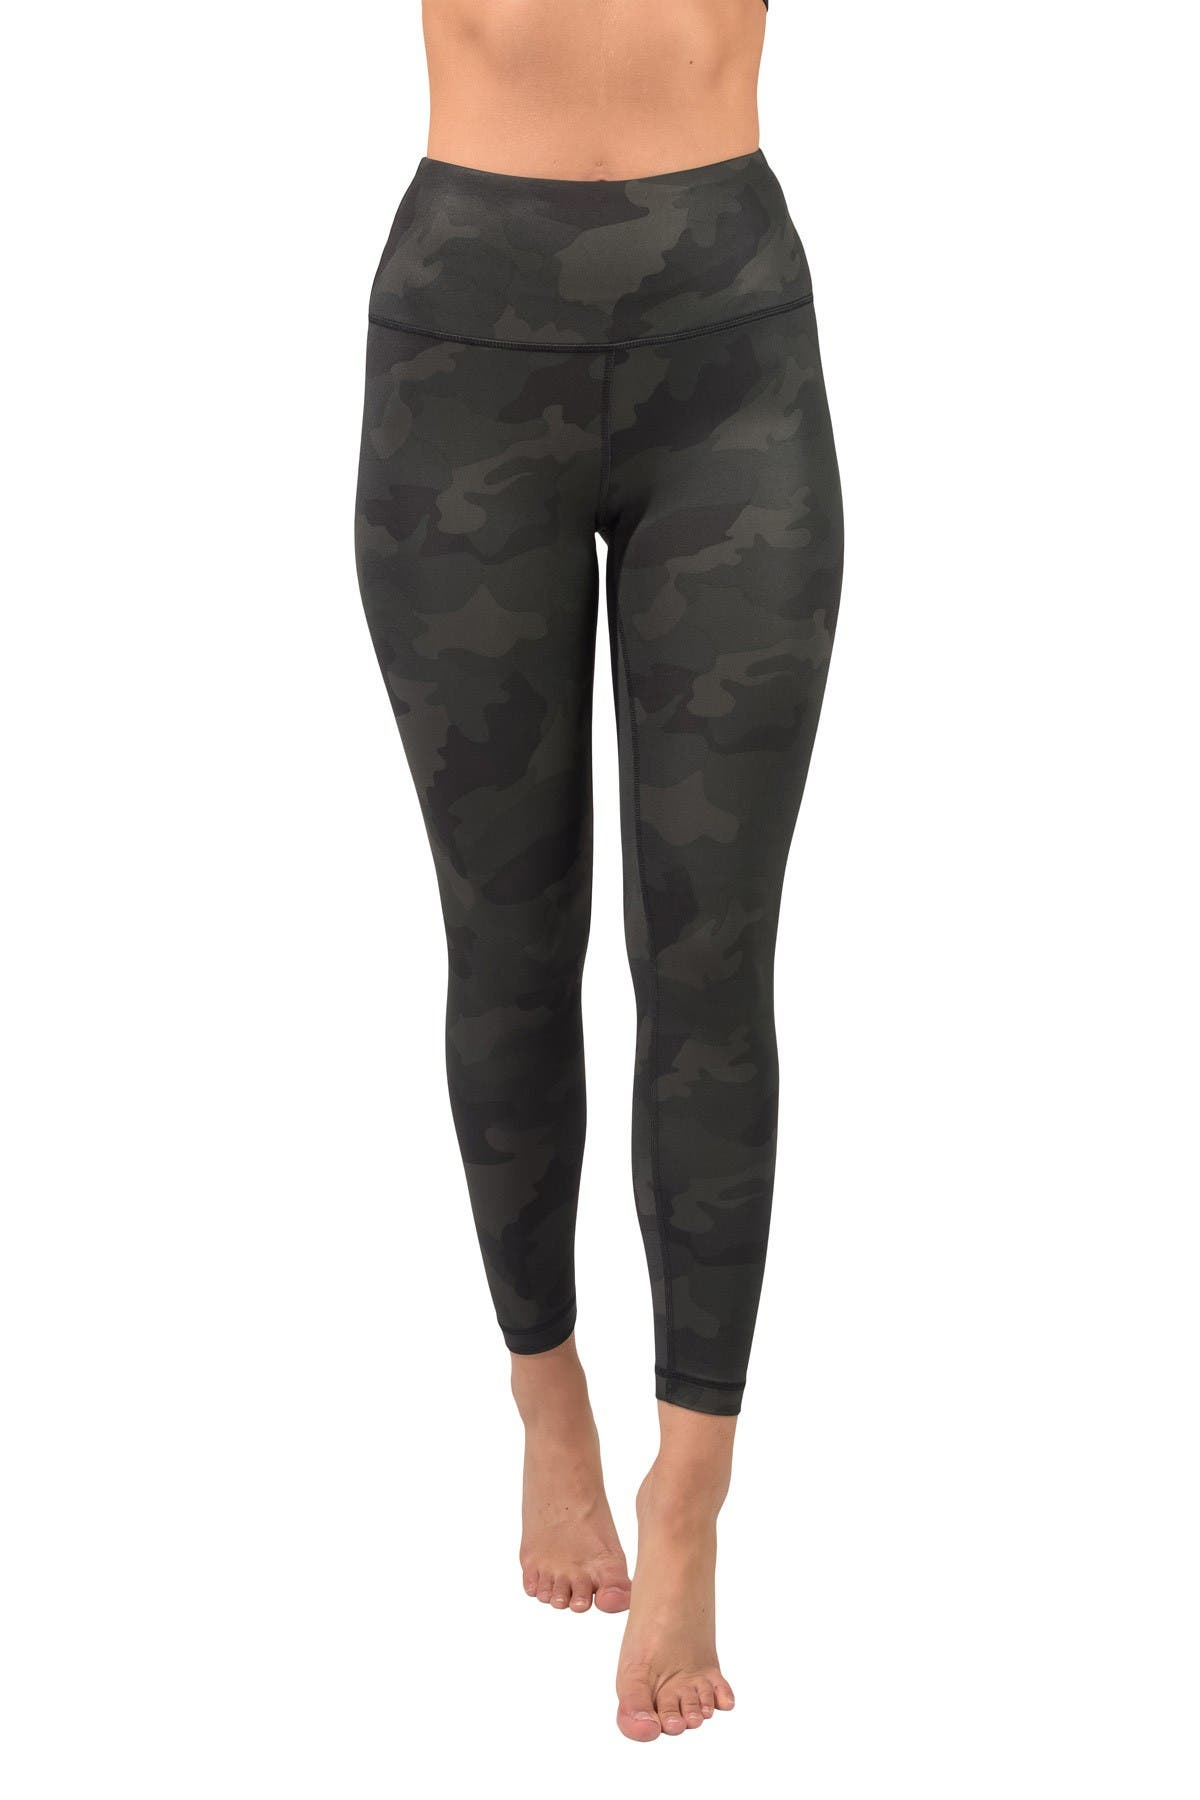 Image of 90 Degree By Reflex Nude Tech High Waist Camo Printed Ankle Leggings